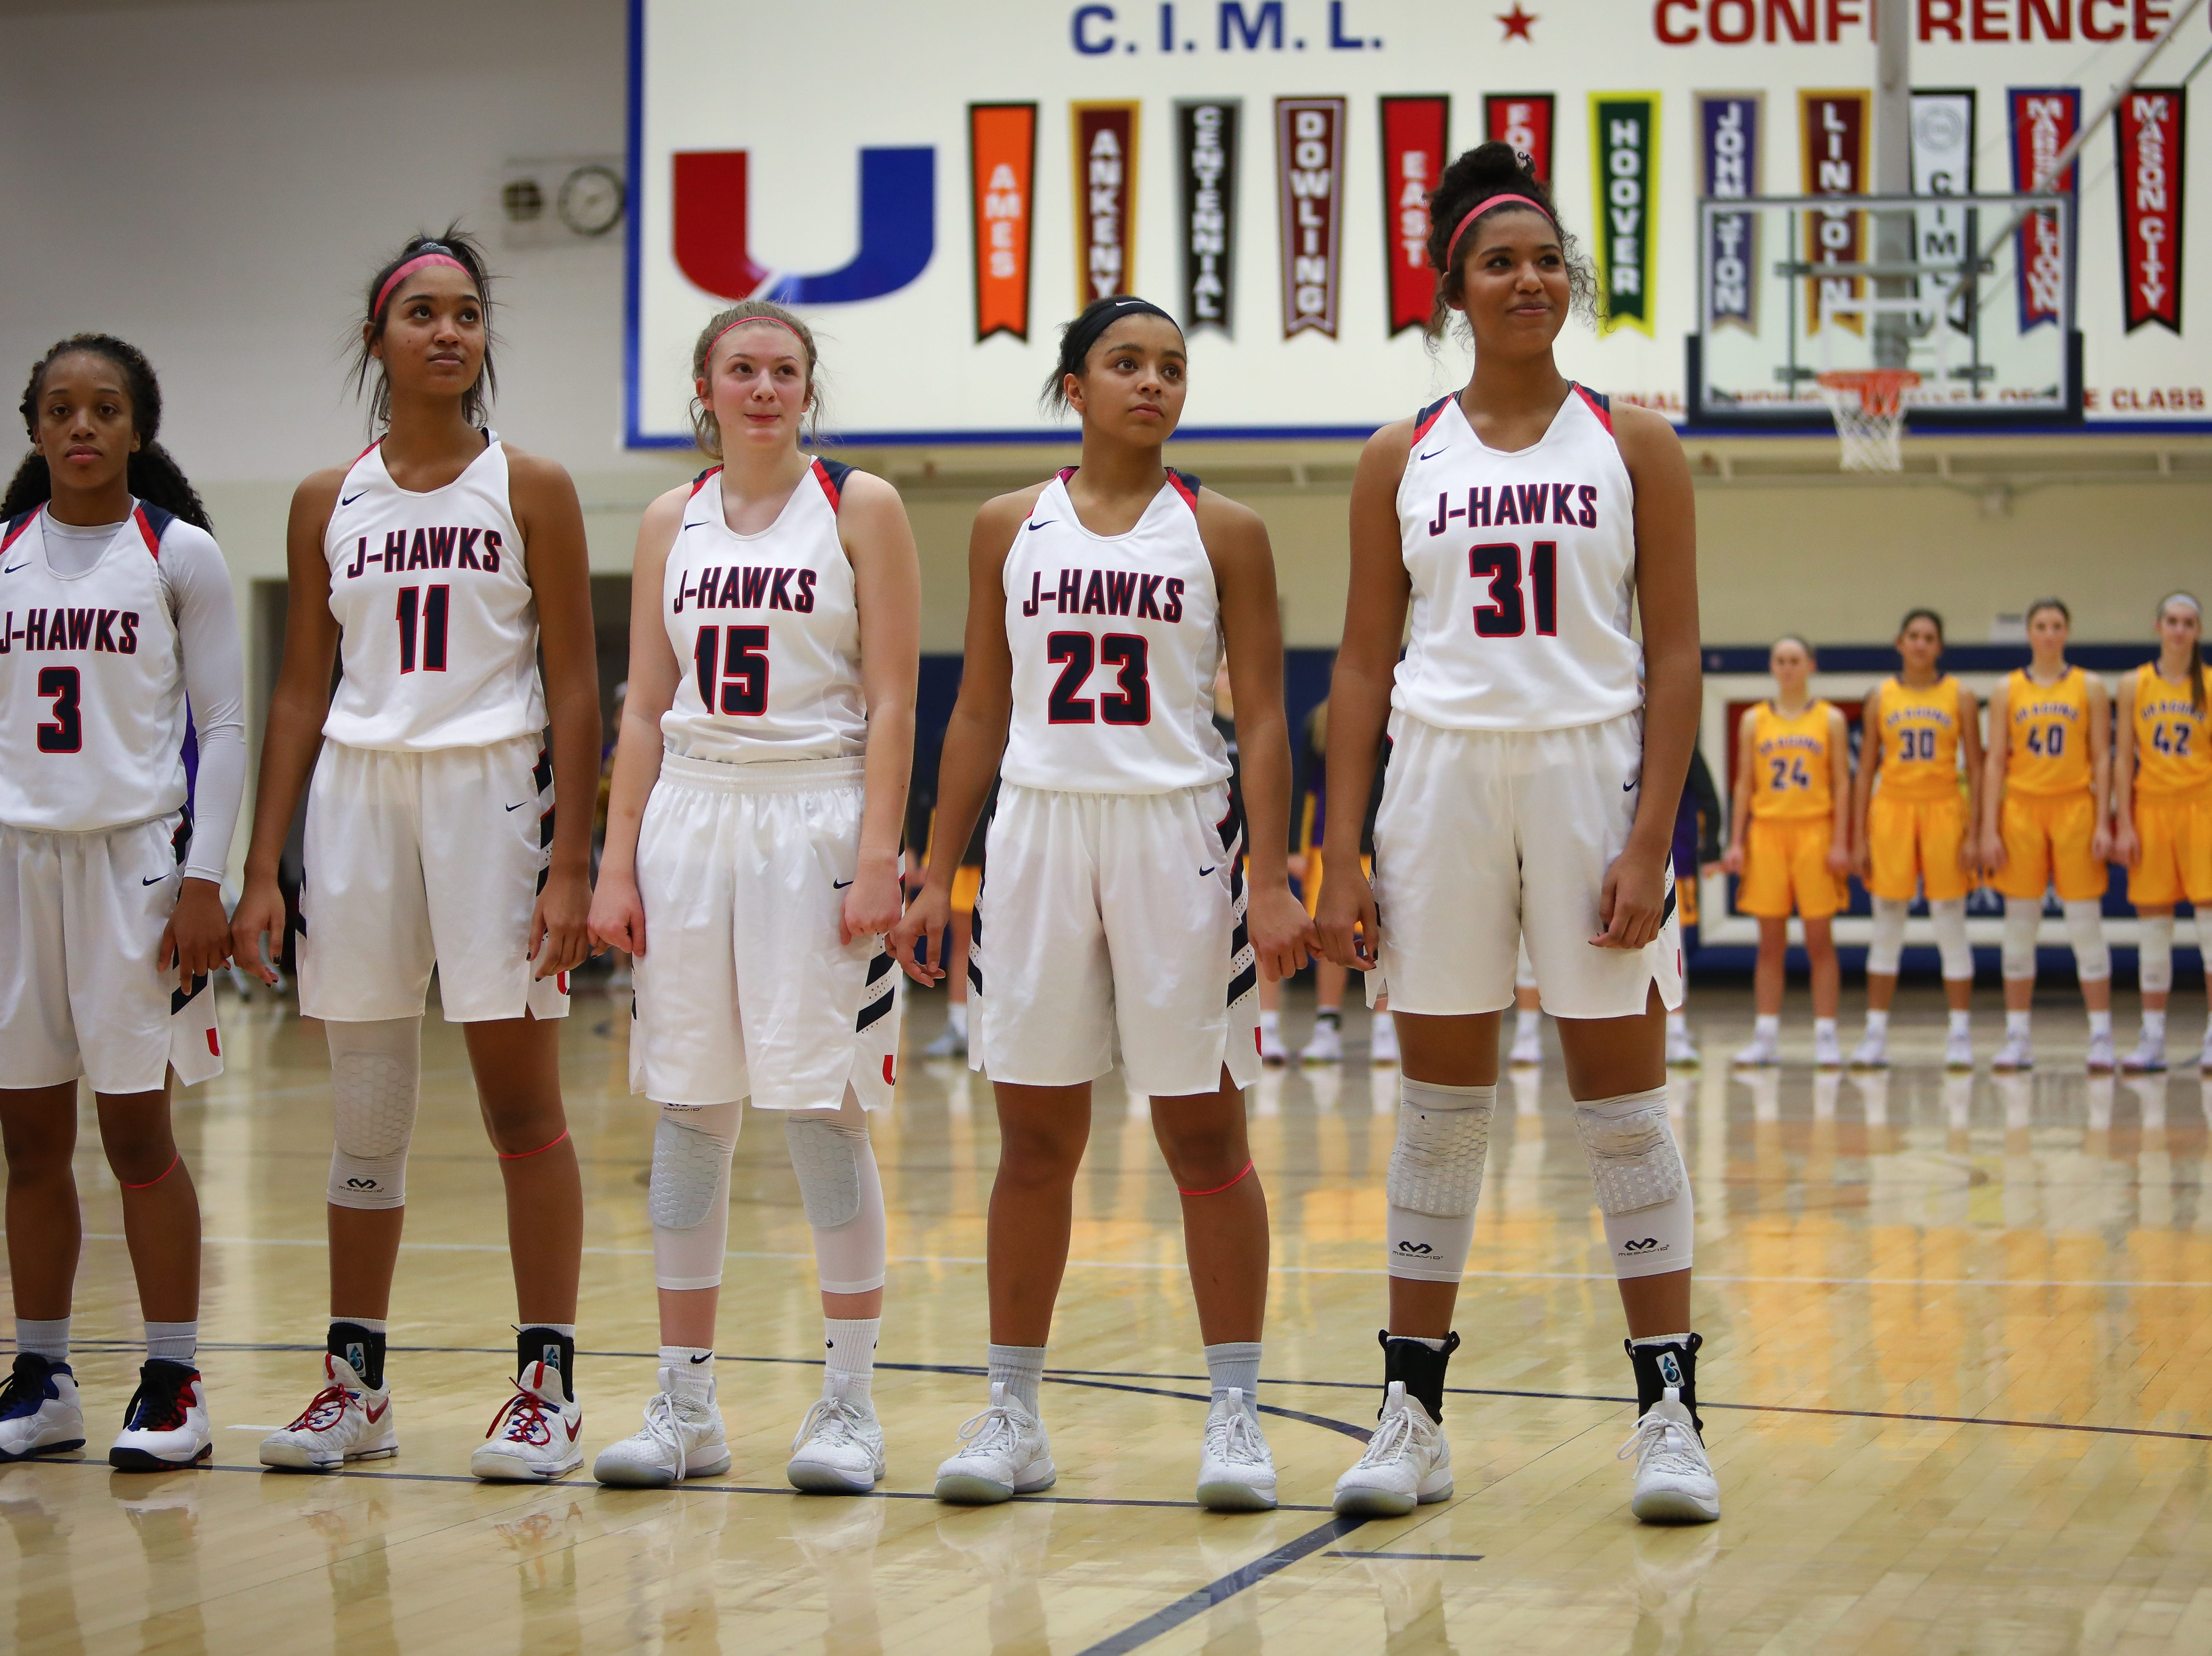 Members of the Urbandale J-Hawks and the Johnston Dragons line up for the national anthem before a girls high school basketball game at Urbandale High School on Dec. 18, 2018 in Urbandale, Iowa.